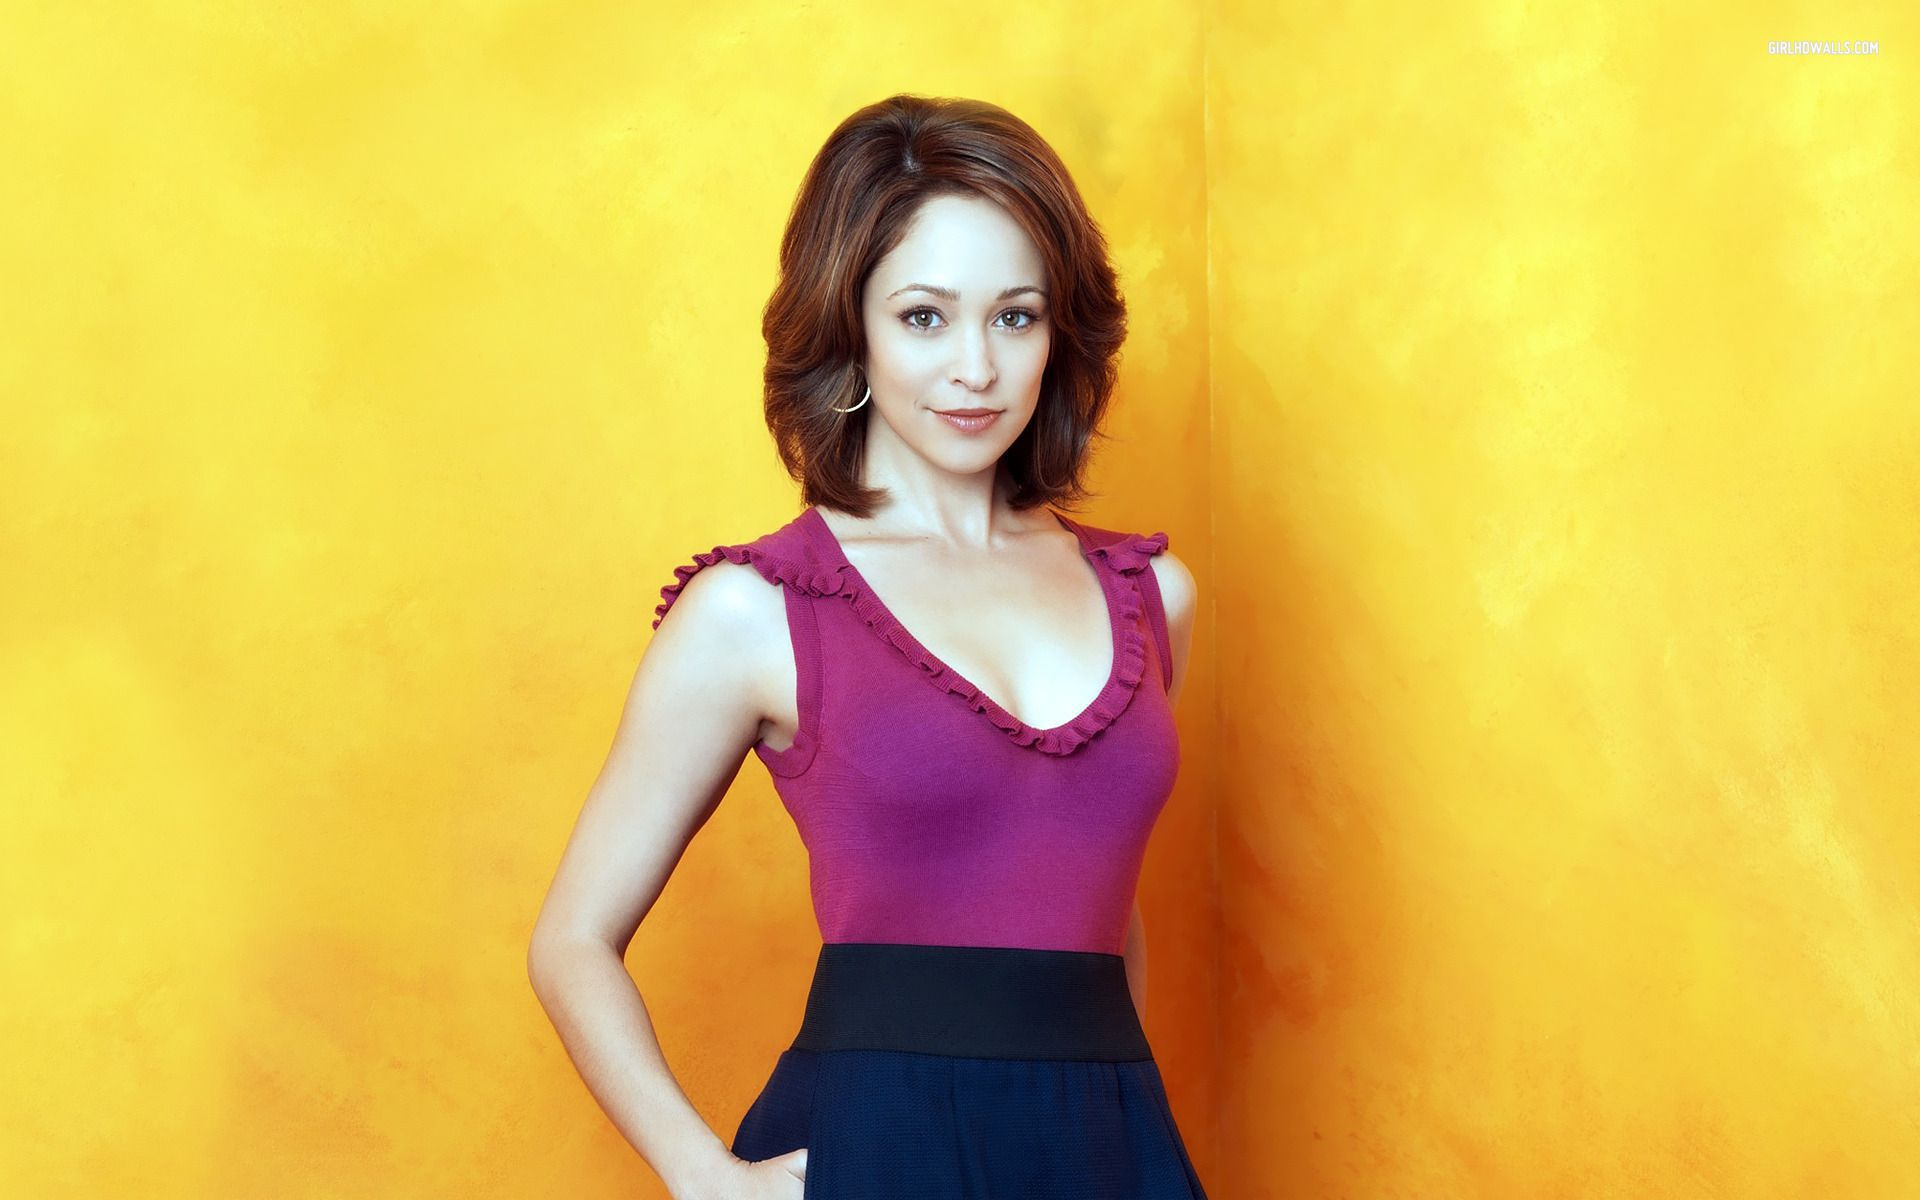 Autumn Reeser Wallpapers Backgrounds